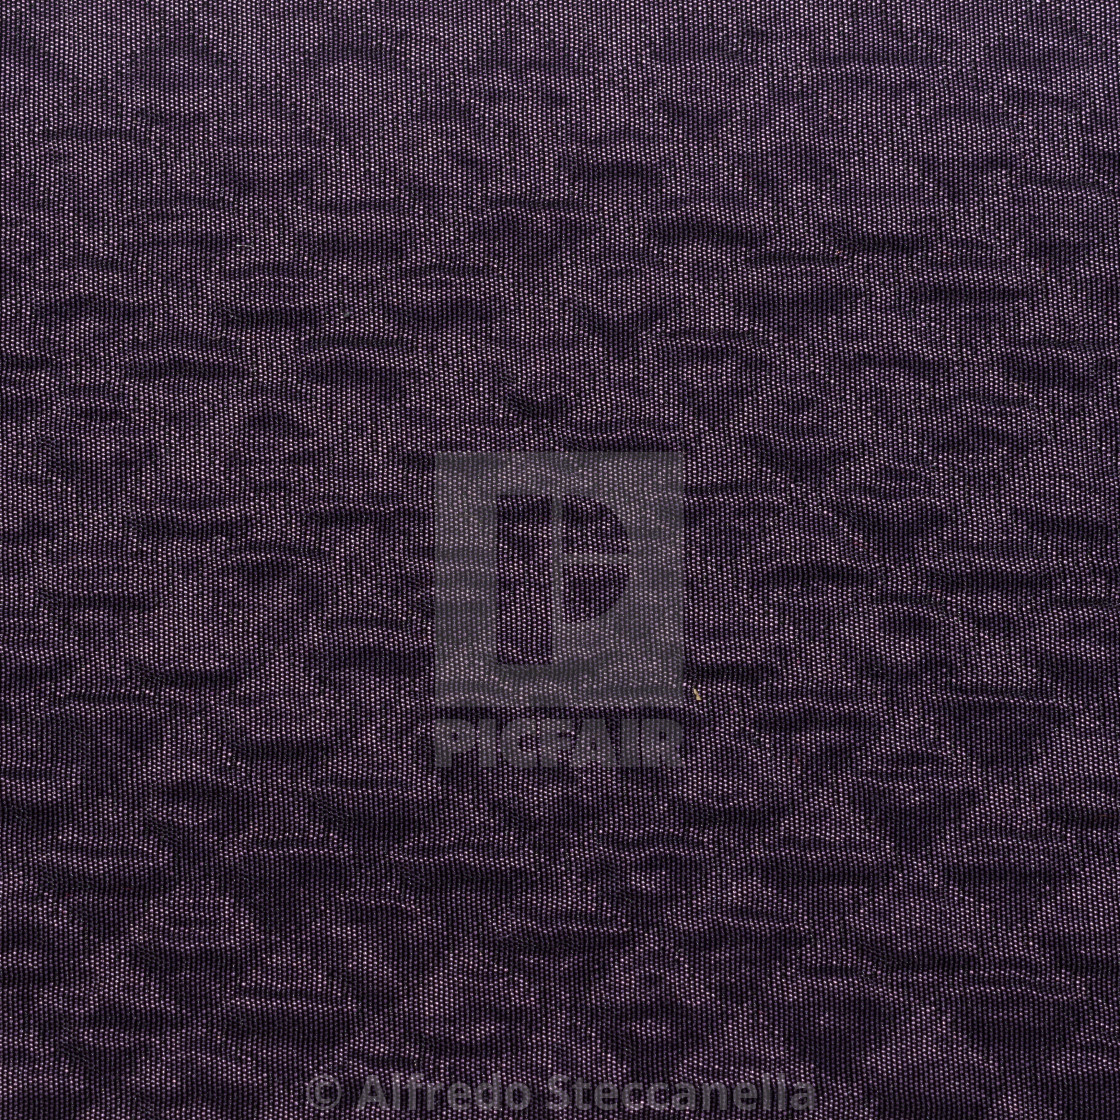 """Canvas fabric texture"" stock image"